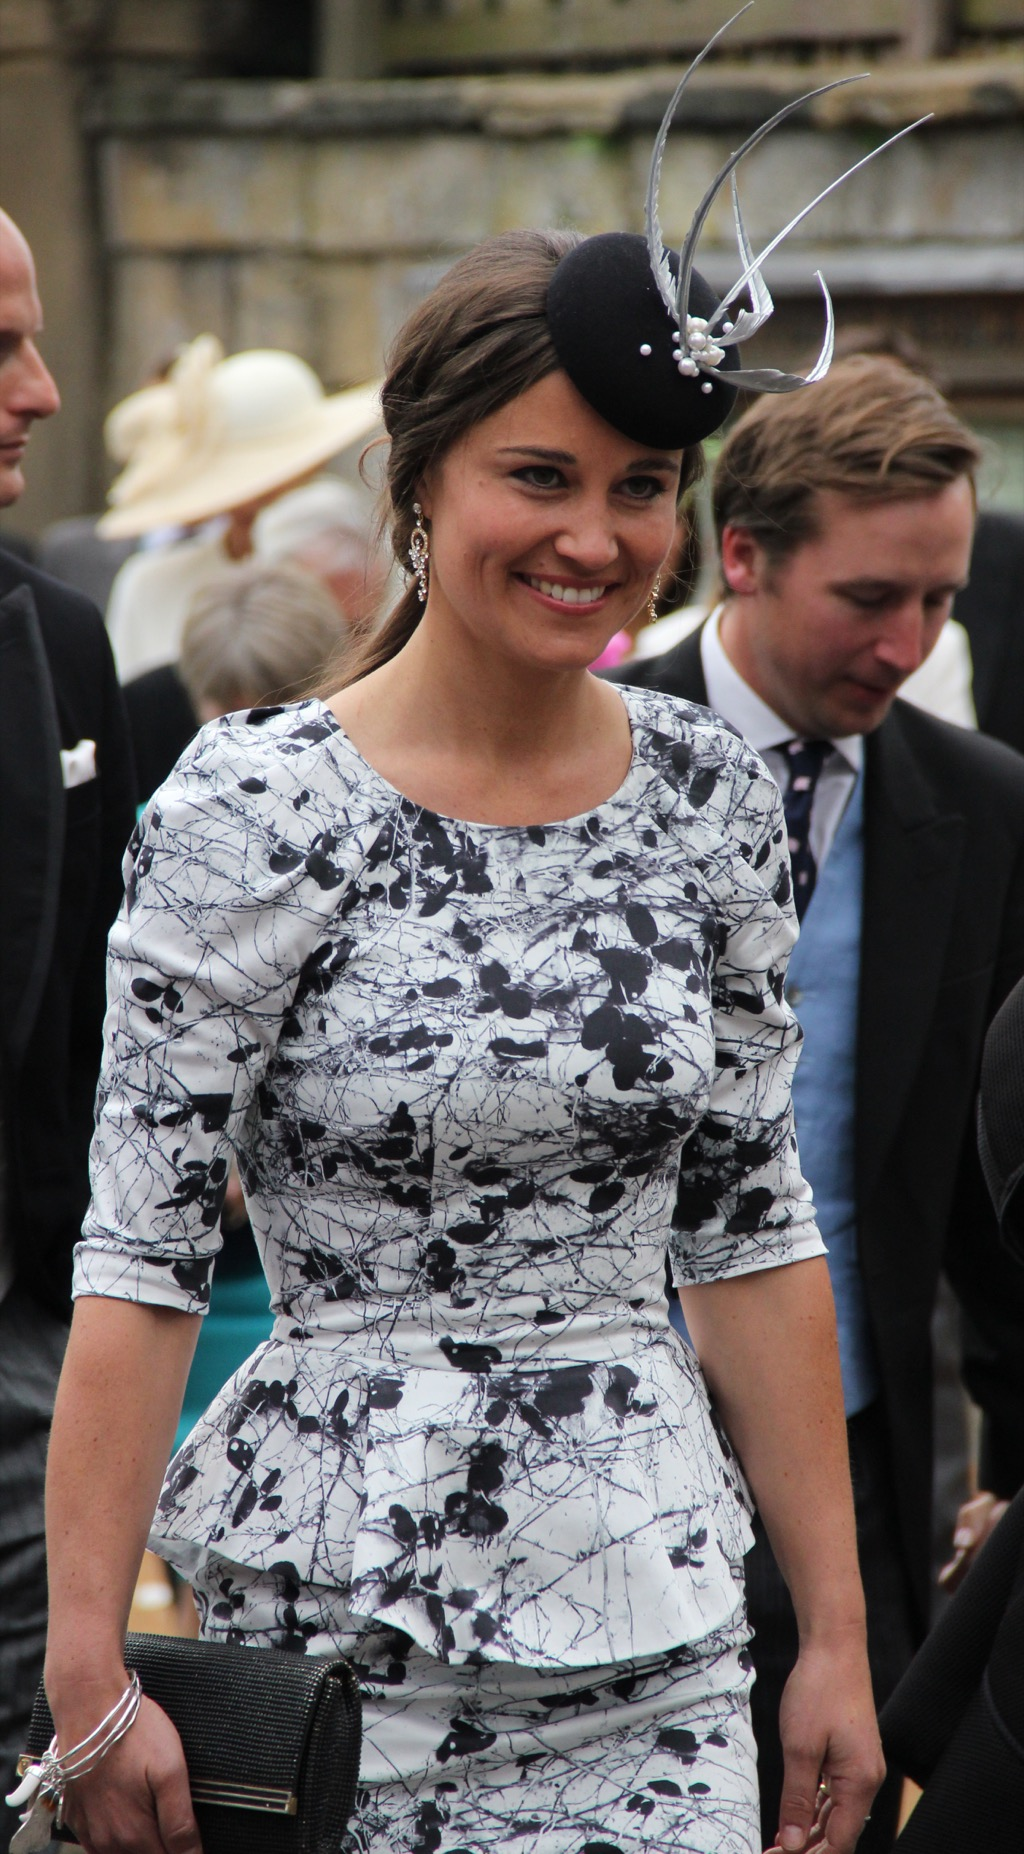 what sets Meghan and Kate apart